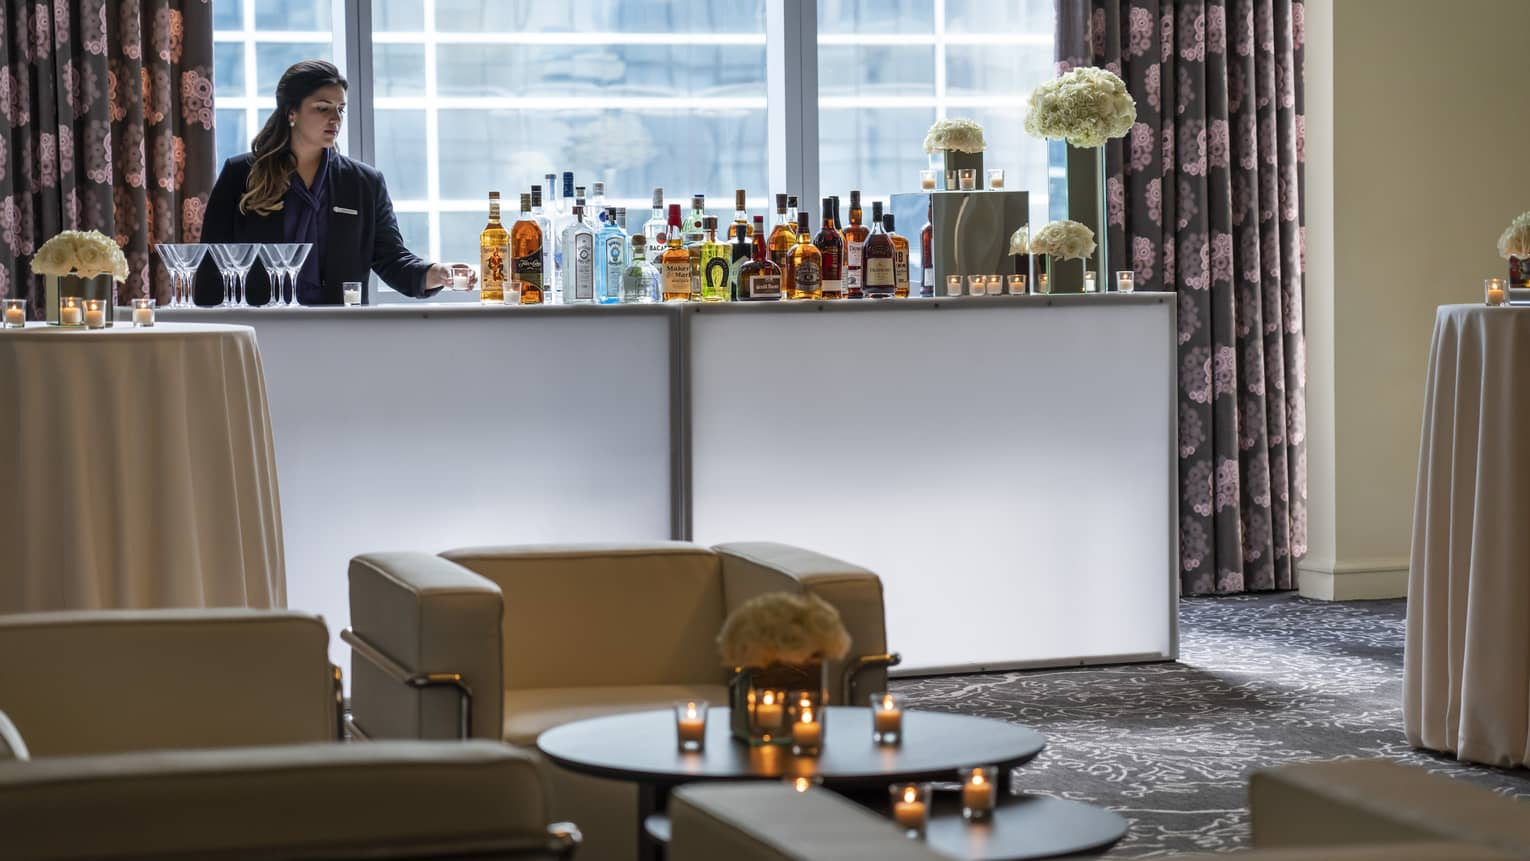 Bartender stands at liquor bottle-lined bar in front of window near seating area